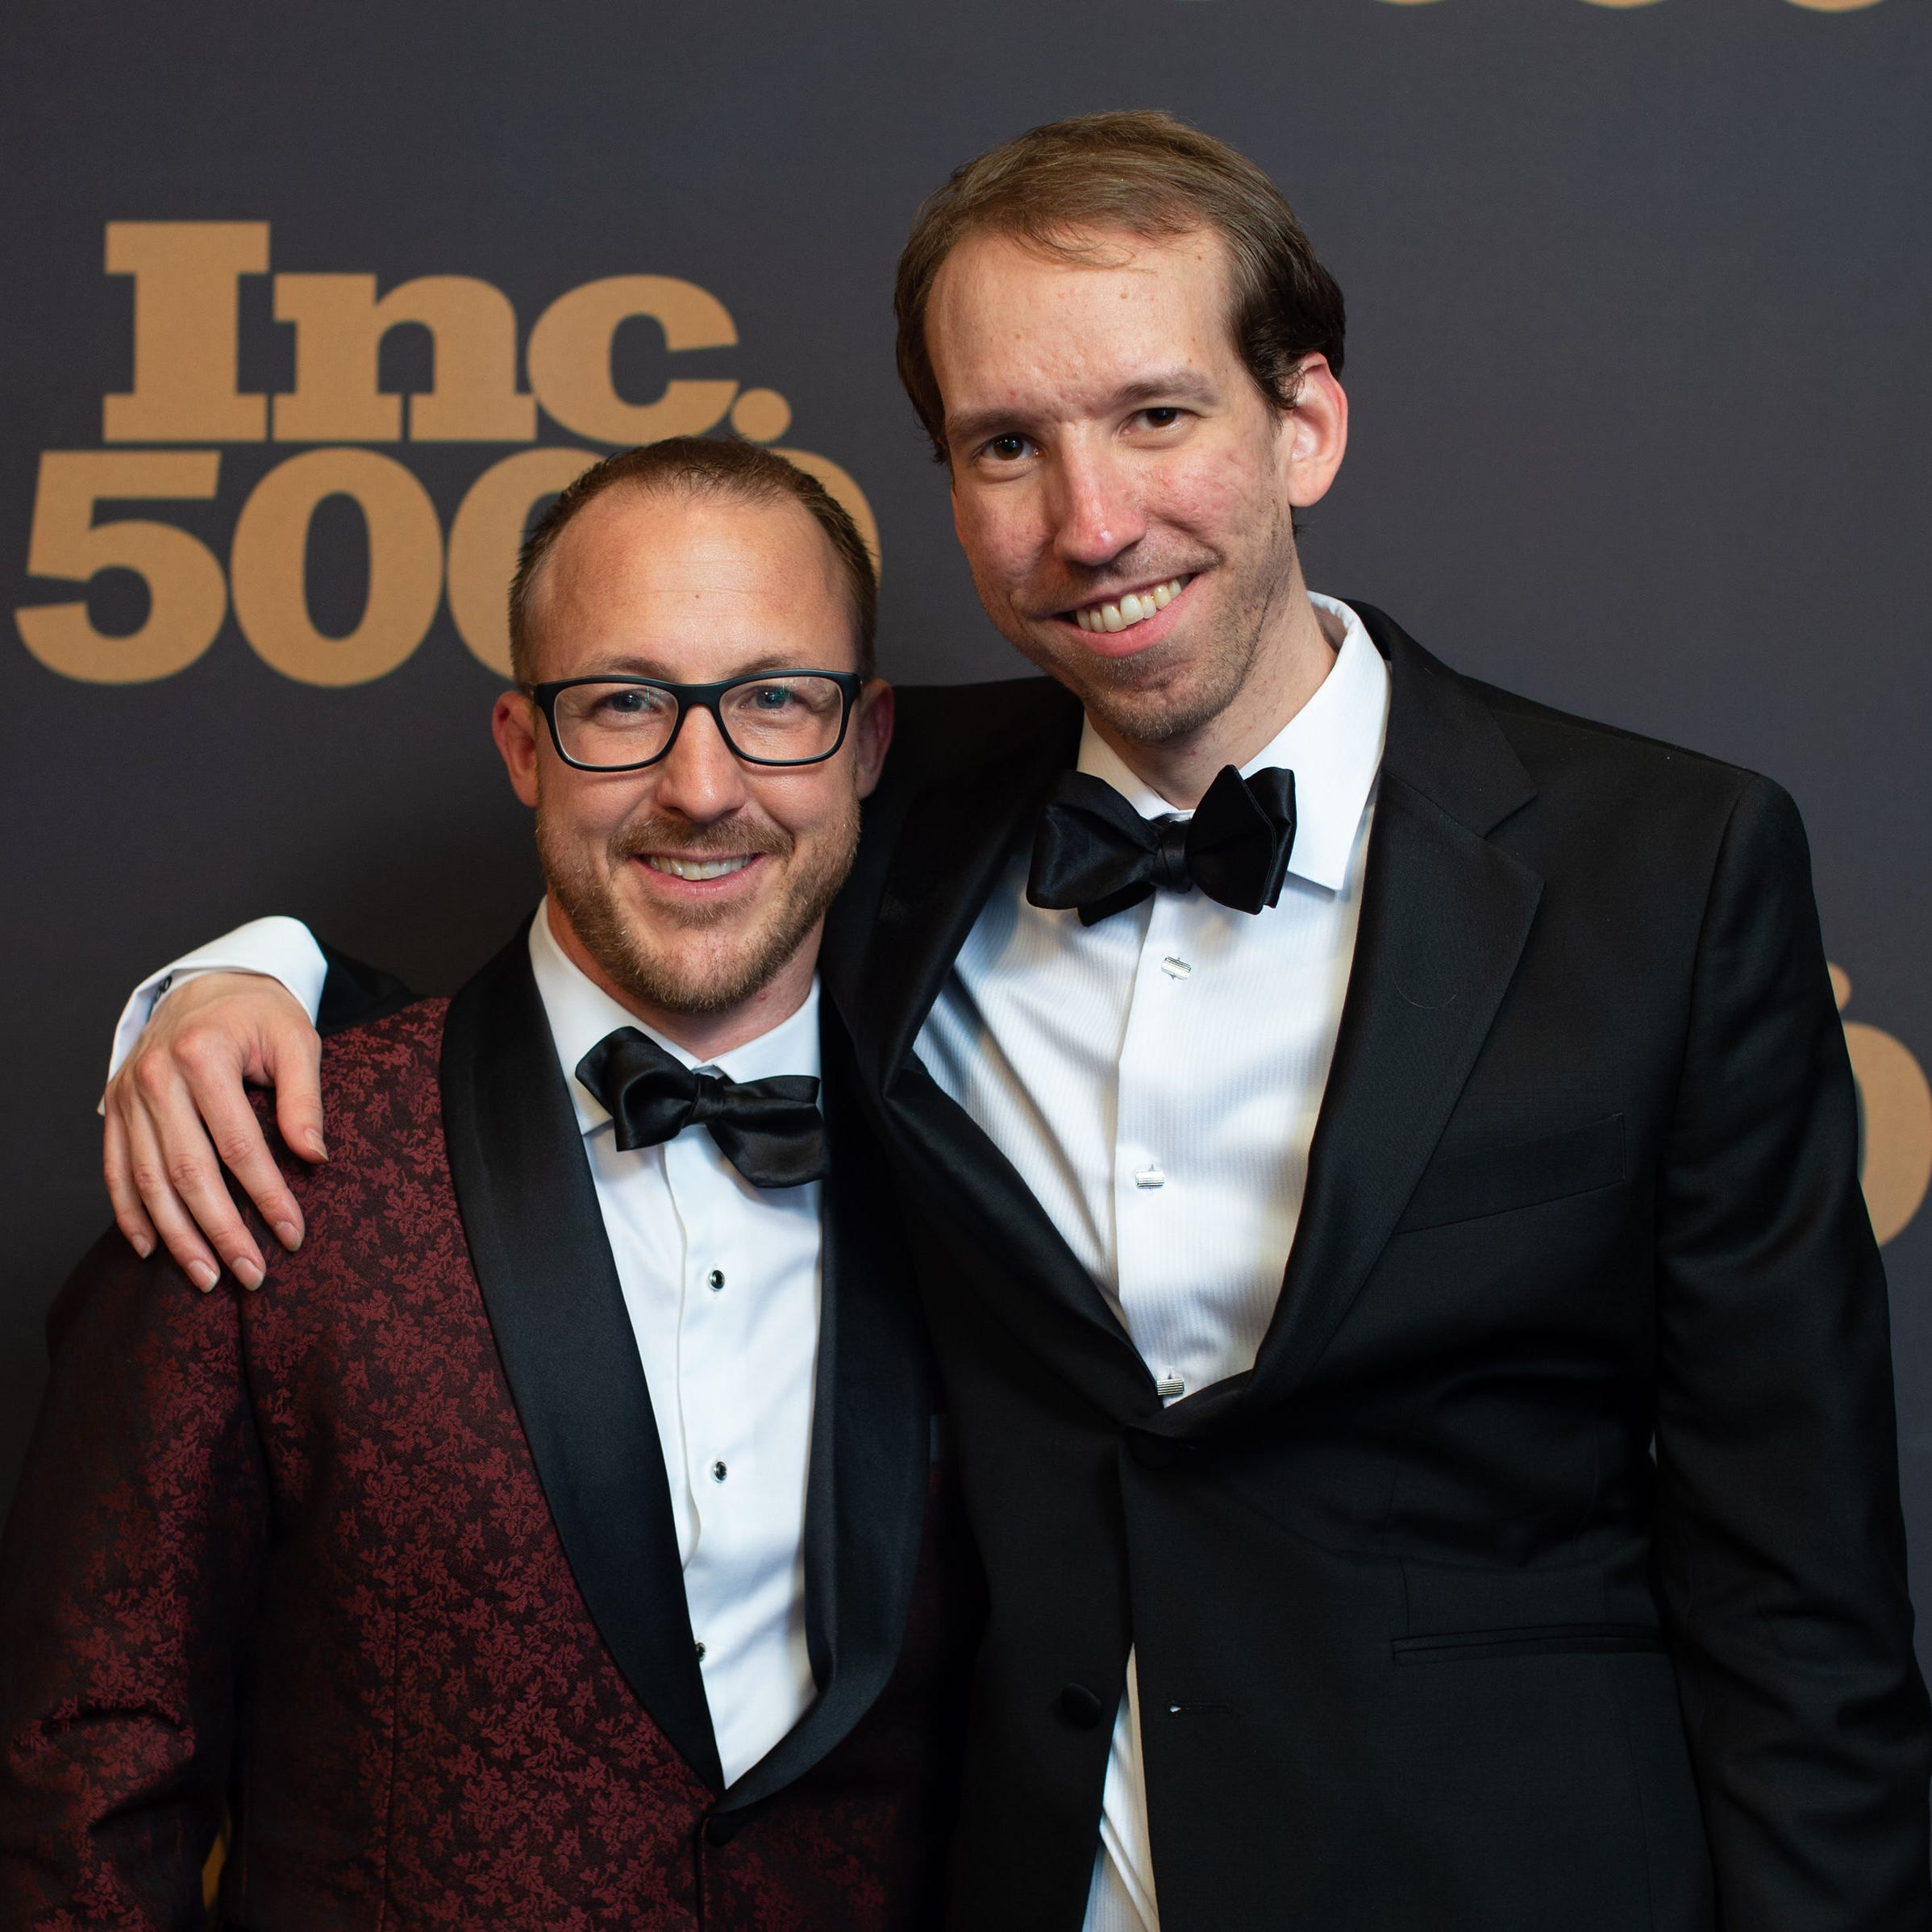 Brad Hollister (left) and Jason Swanson, co-founders of SwanLeap, attend the Inc. 5000 Awards. The magazine named SwanLeap the fastest growing company in the country.